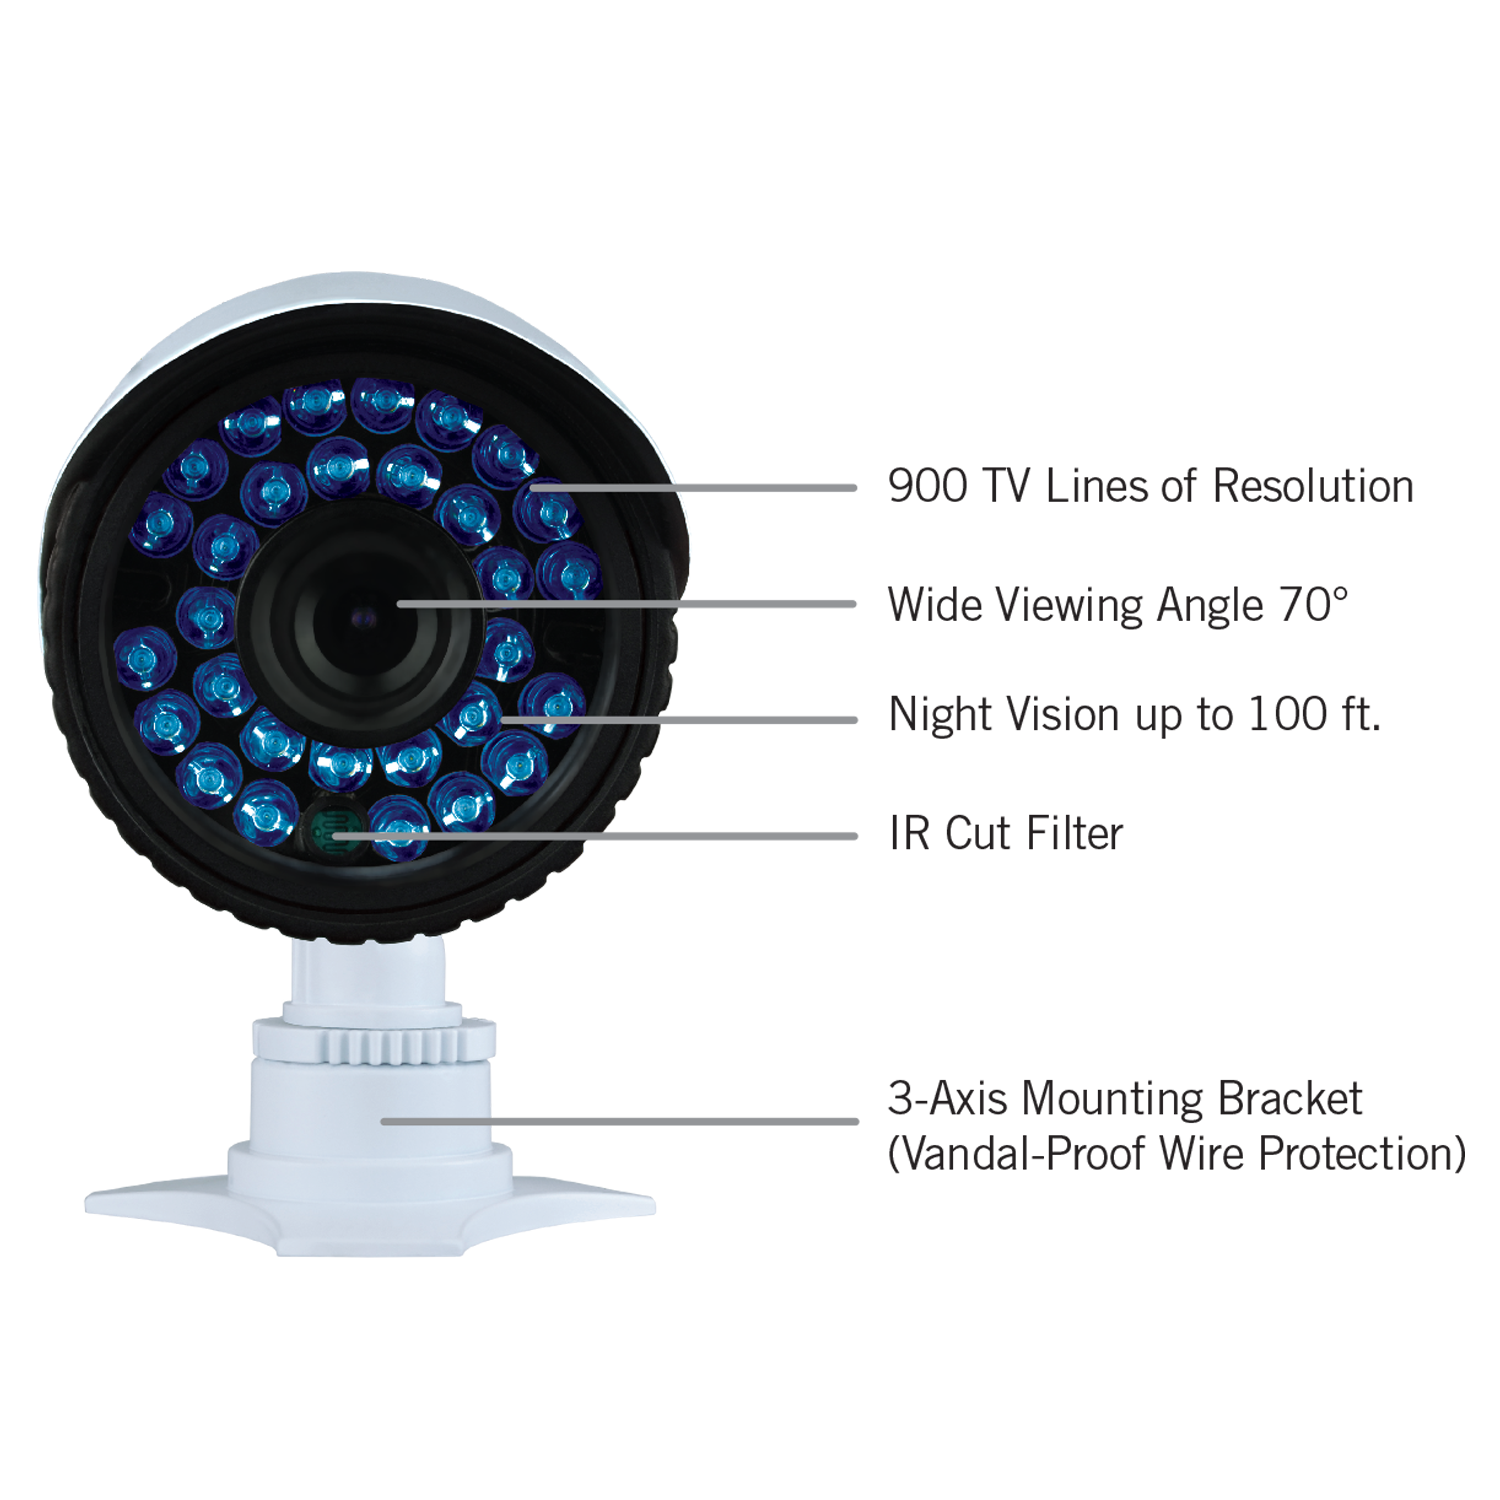 Wide angle 900TVL analog camera with up to 100ft of Night Vision!